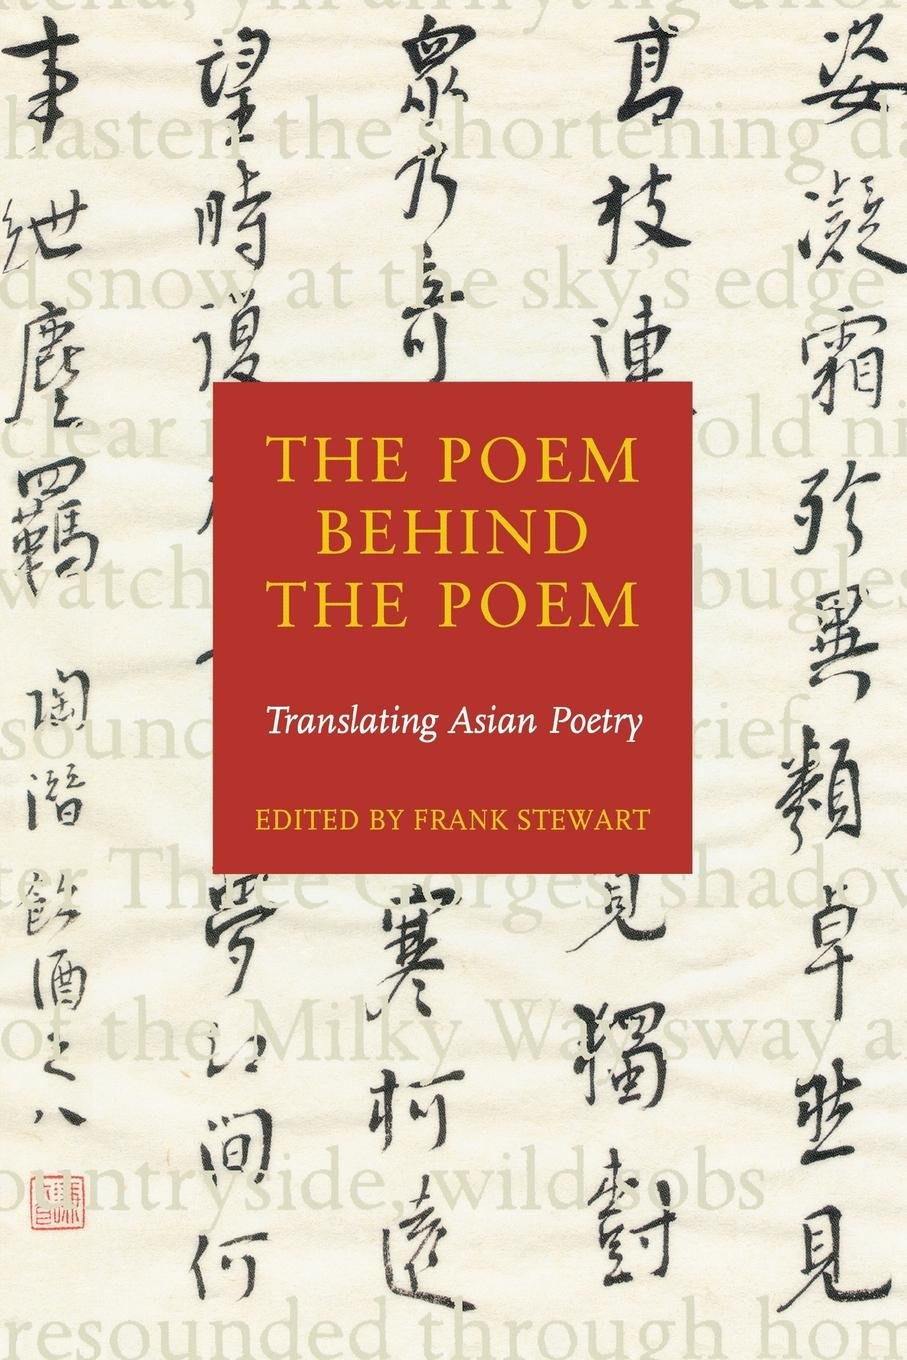 The Poem Behind the Poem: Translating Asian Poetry: Frank Stewart:  9781556592003: Amazon.com: Books